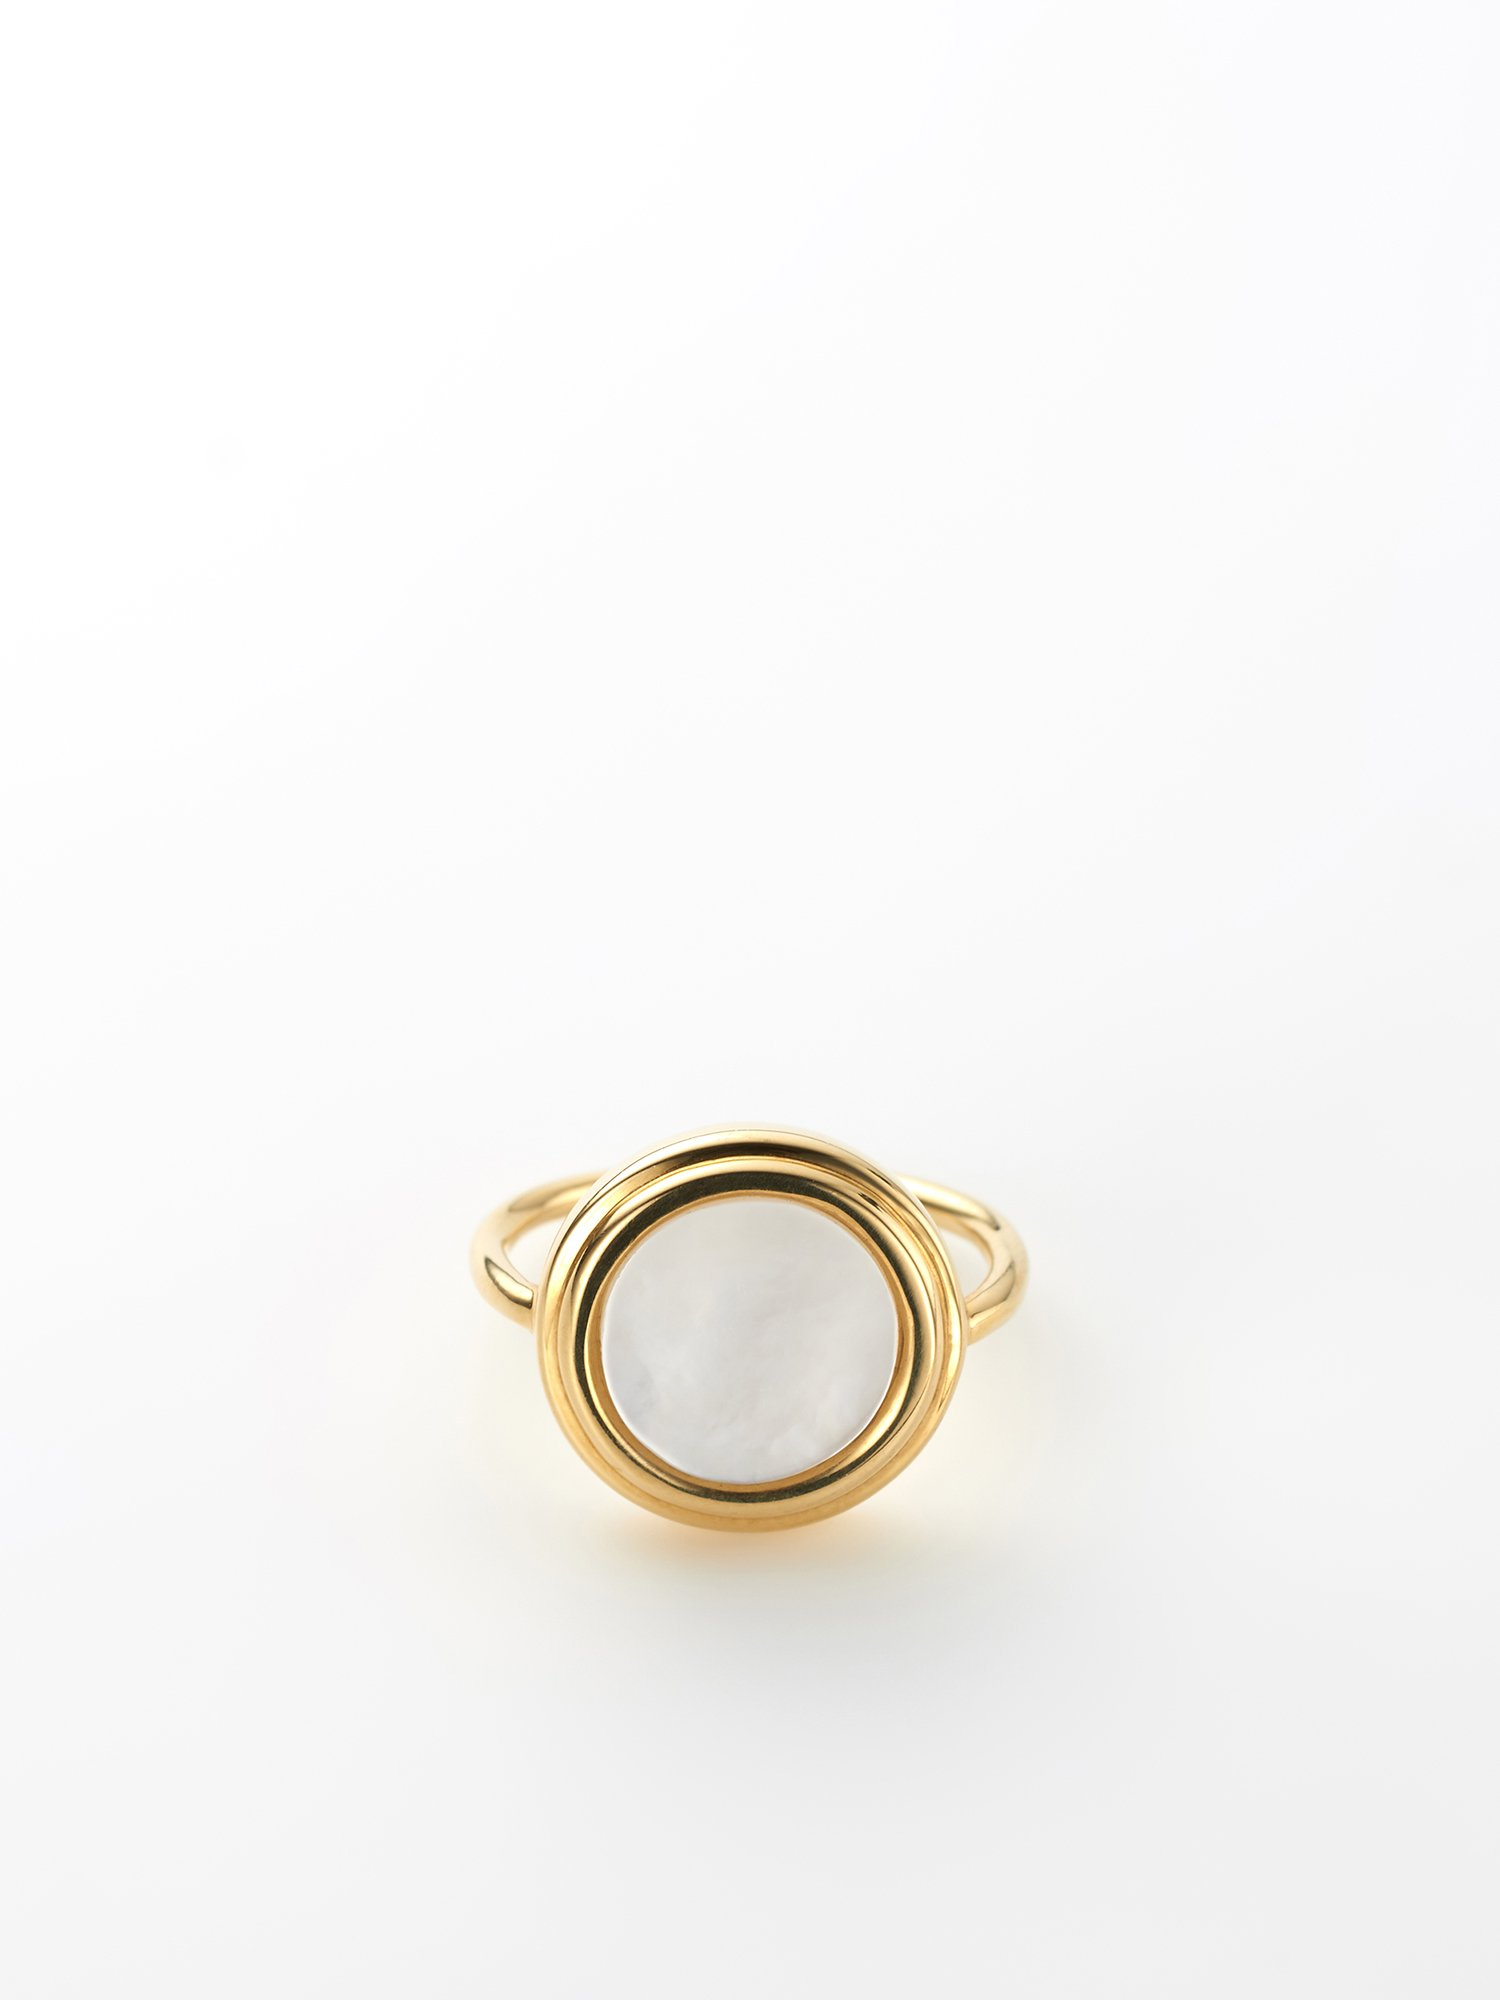 SOPHISTICATED VINTAGE / Planet ring / Mother of pearl  / 9号 / 在庫商品